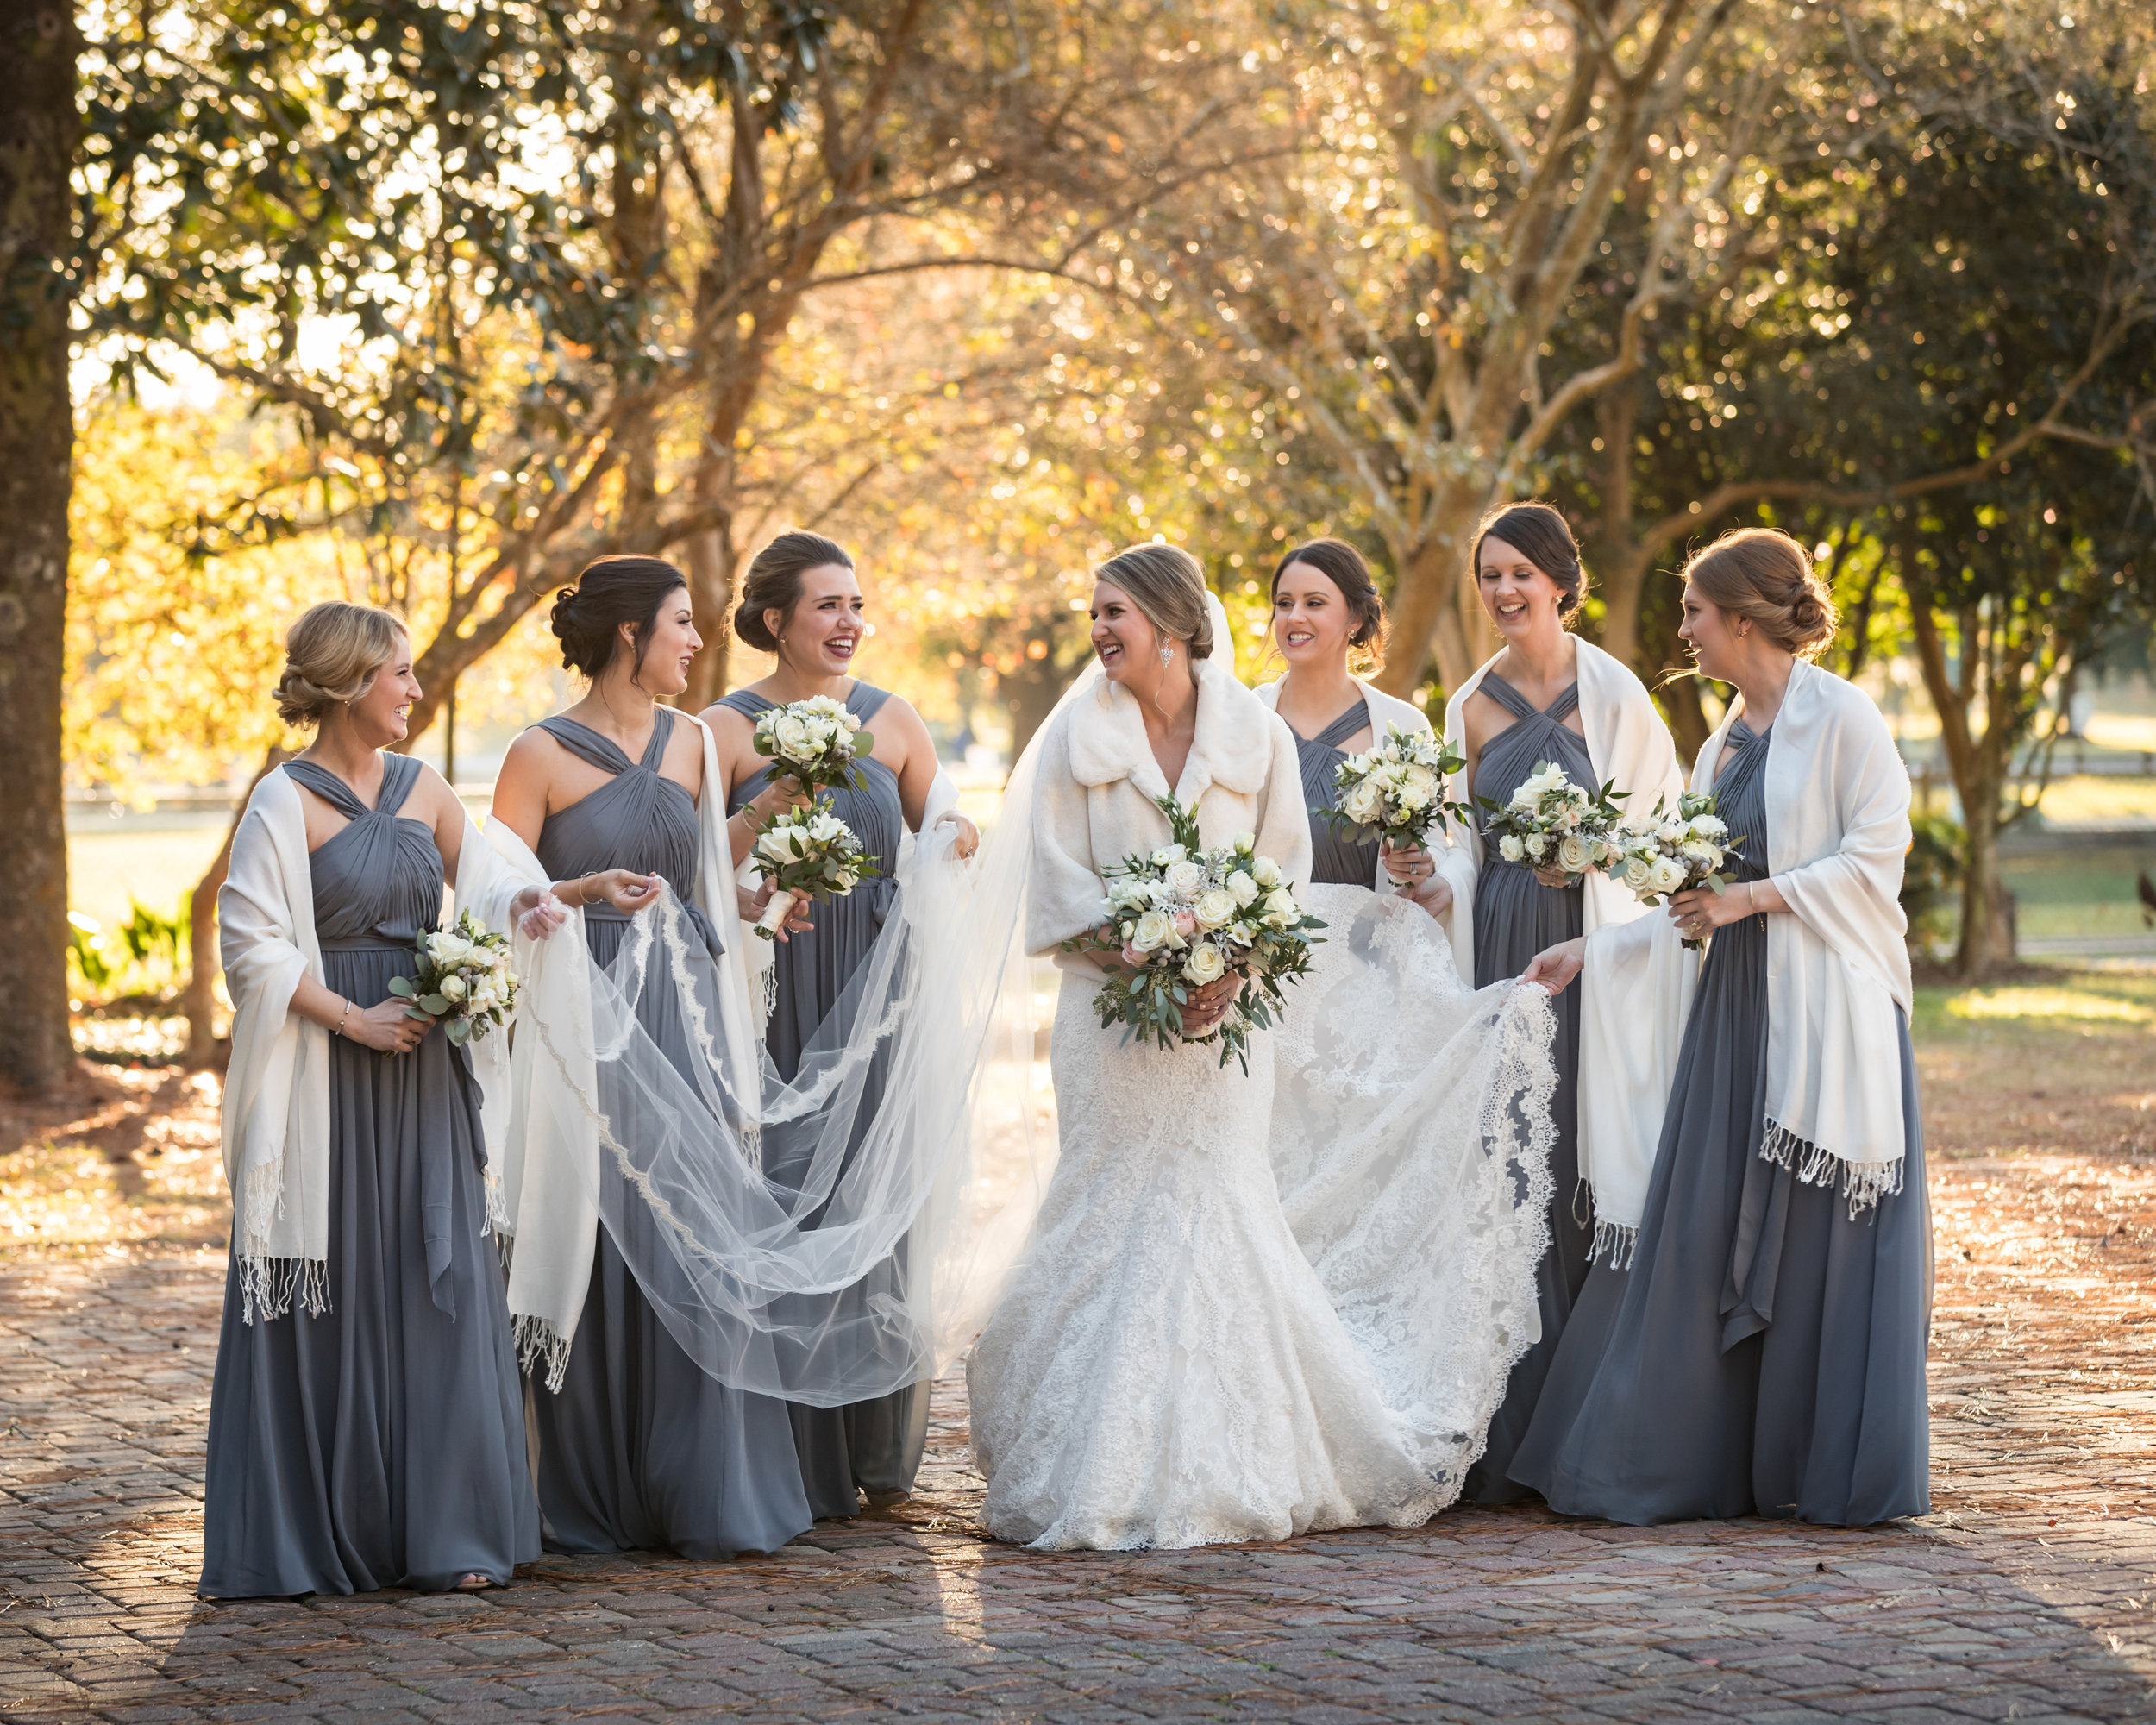 Southern Fete, Southern Wedding, Bride and Bridesmaids Action Shot, Lowry's, The Gardenaire, Jay Faugot Photography, Bleu Hair and Makeup Studio